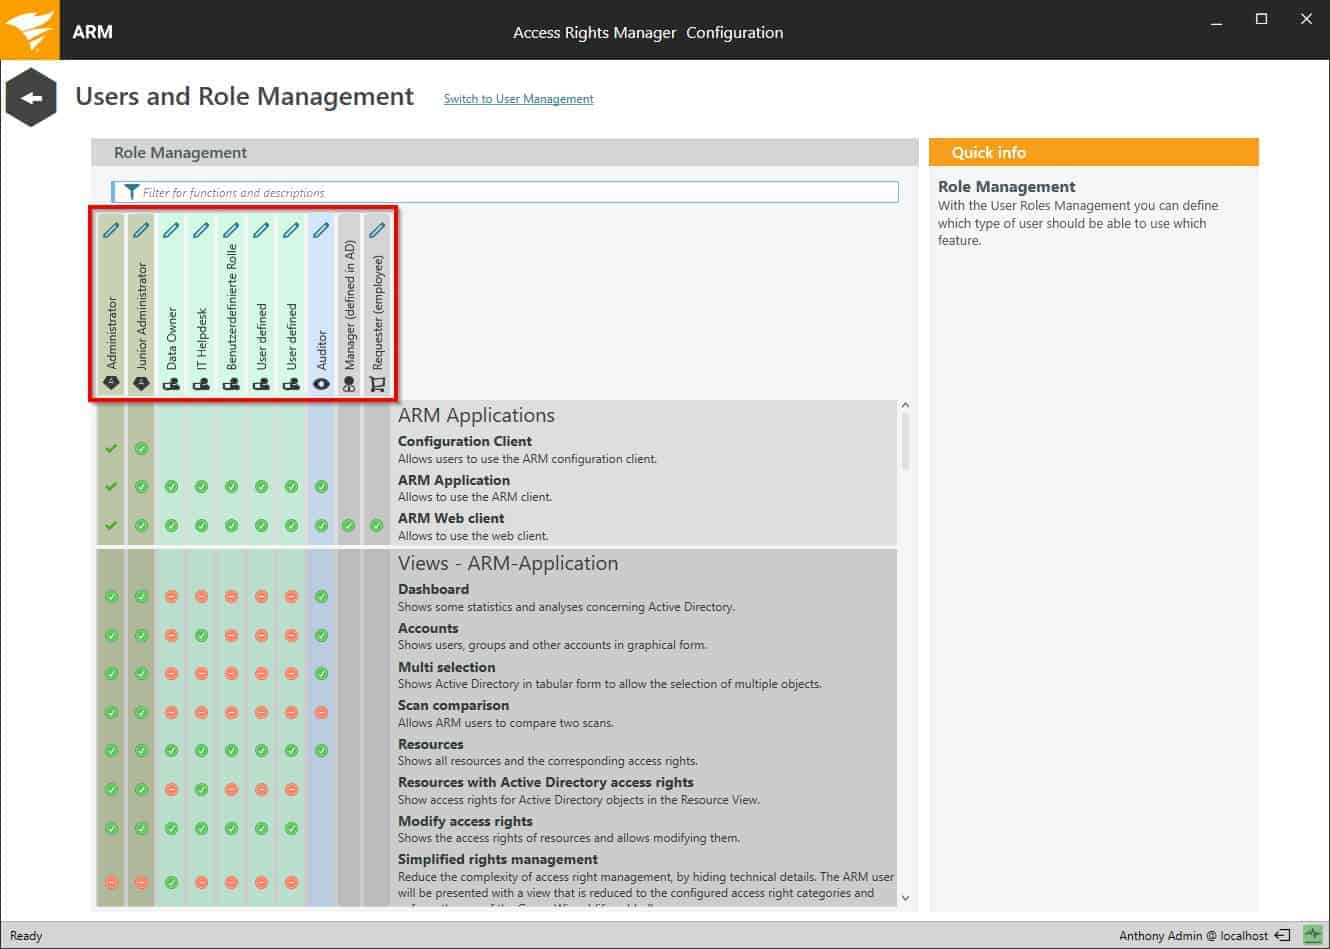 SolarWinds Access Rights Manager dashbord